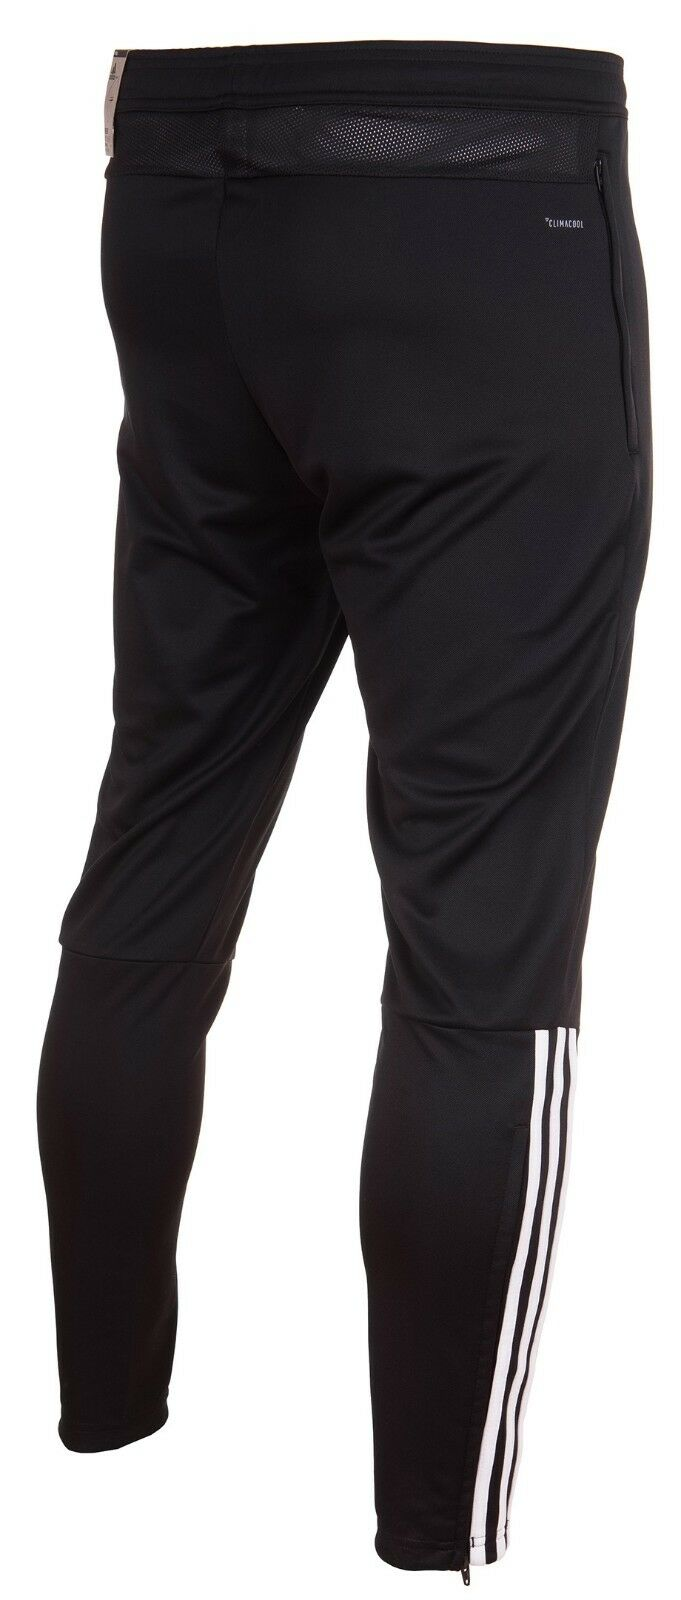 89ed3bf8dbba Adidas REGISTA 18 Track Pants Black White S for sale online